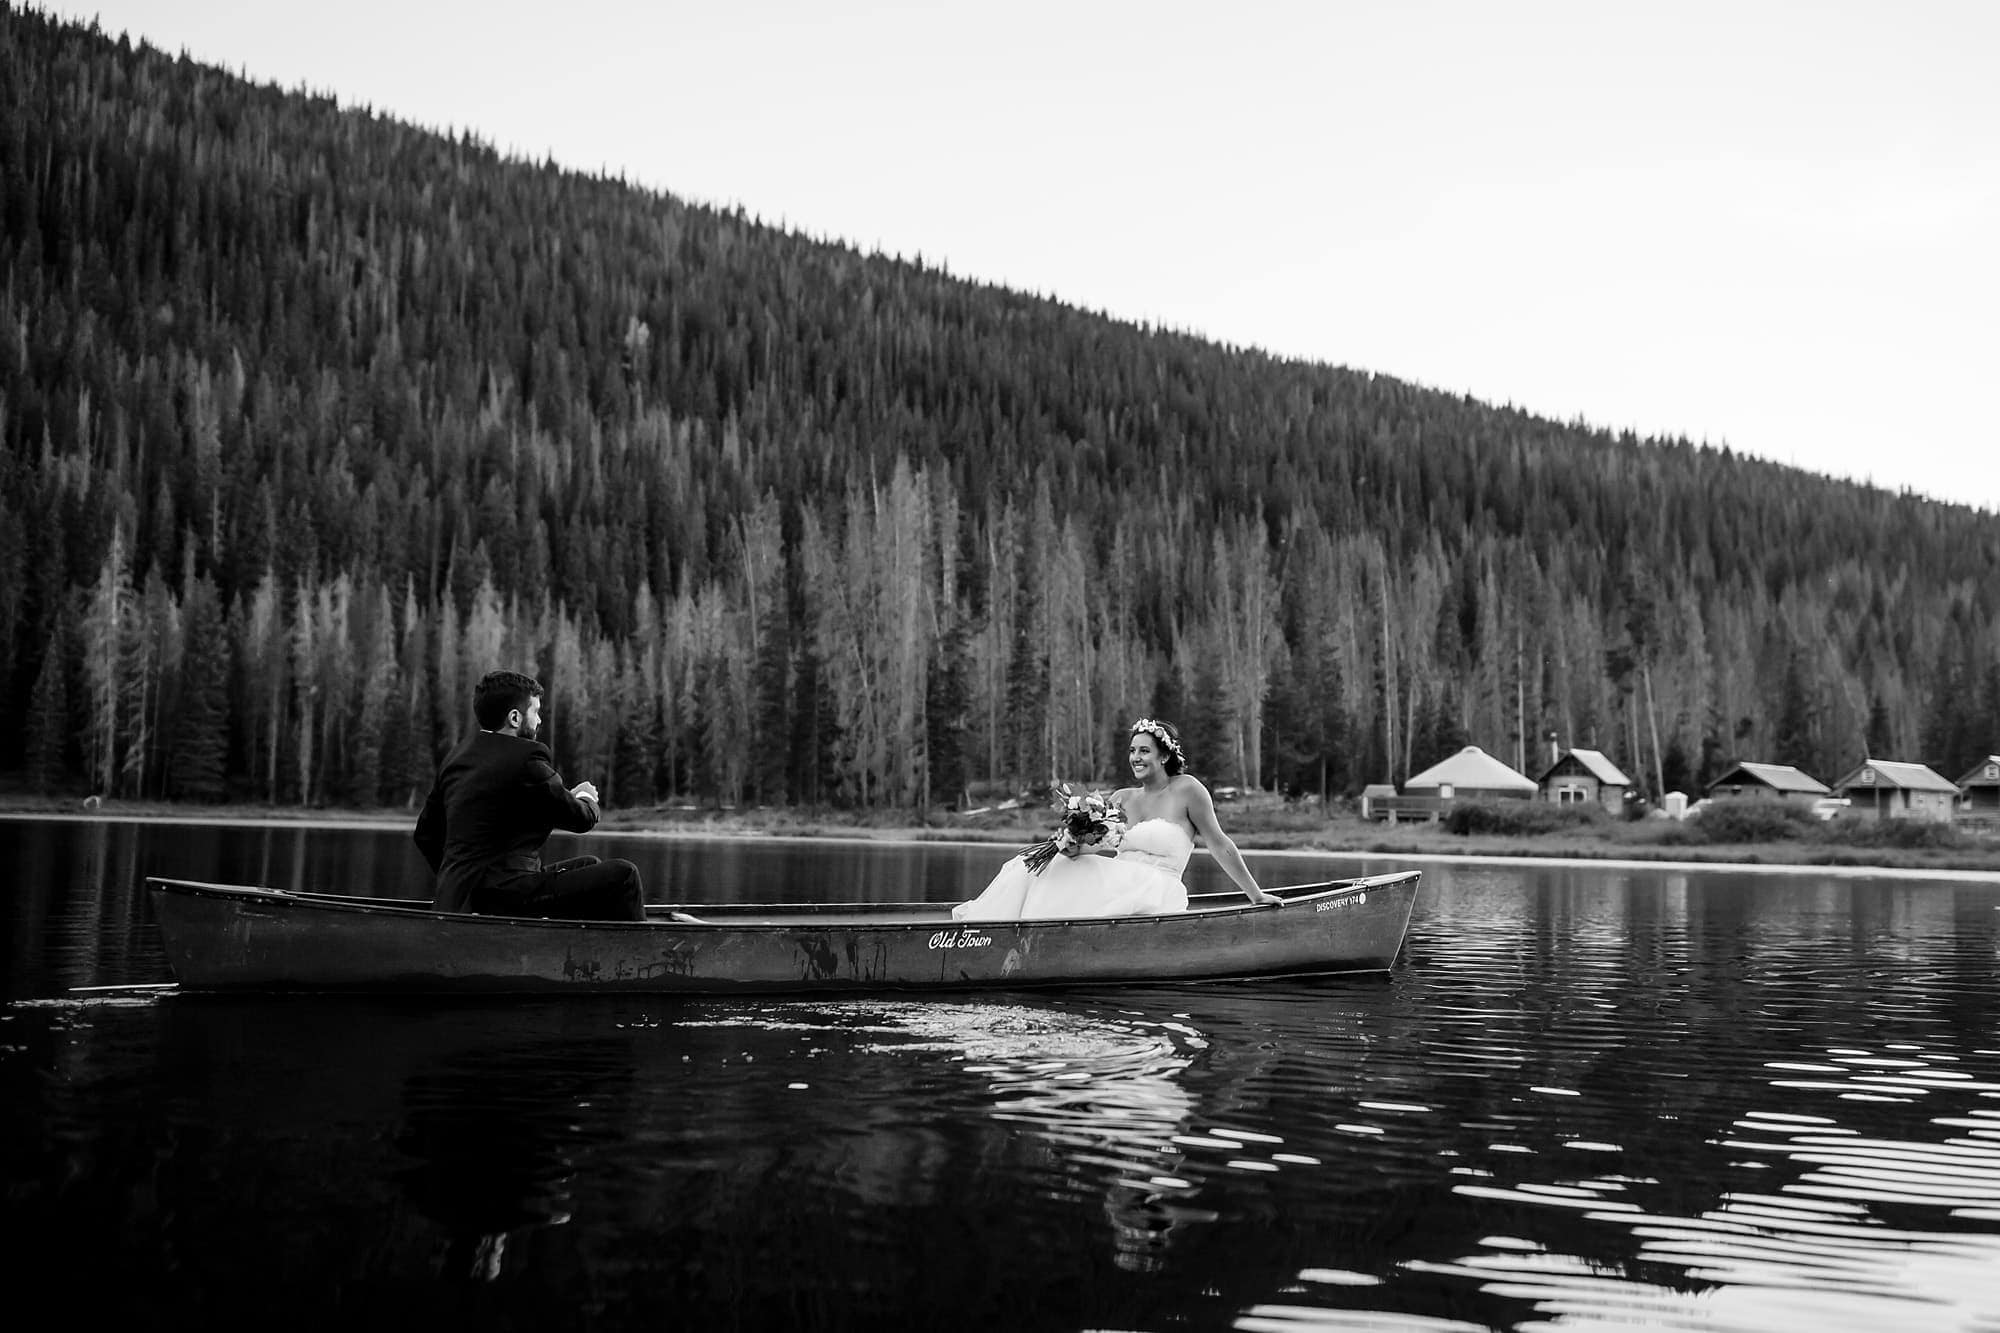 Becky and Brian row in a canoe on Piney Lake during their wedding in September outside of Vail, Colorado.